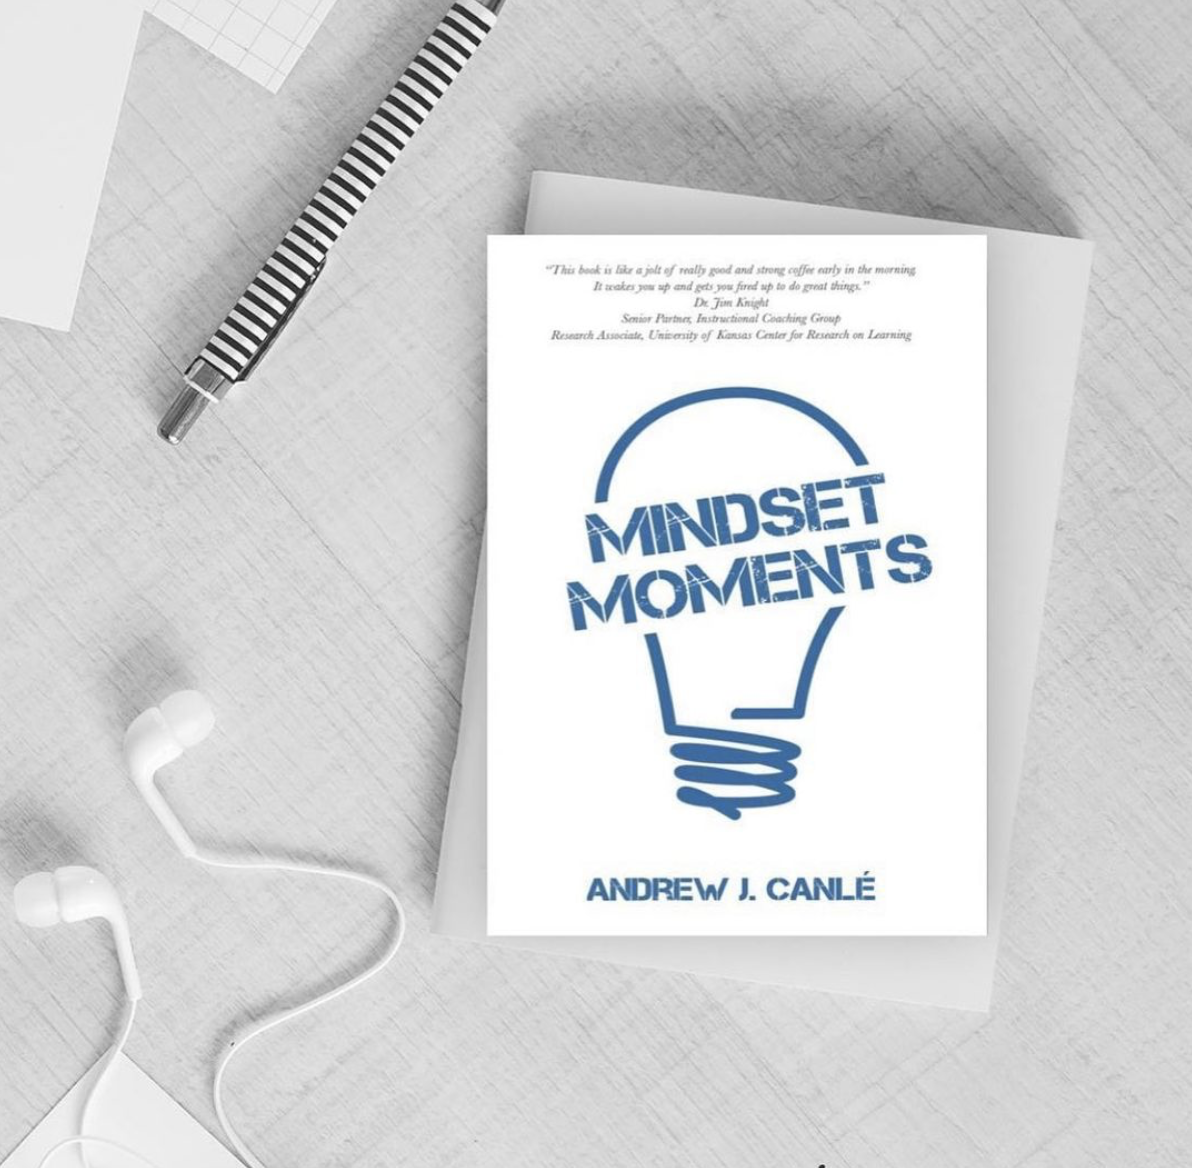 HOT OFF THE PRESS! Mindset Moments